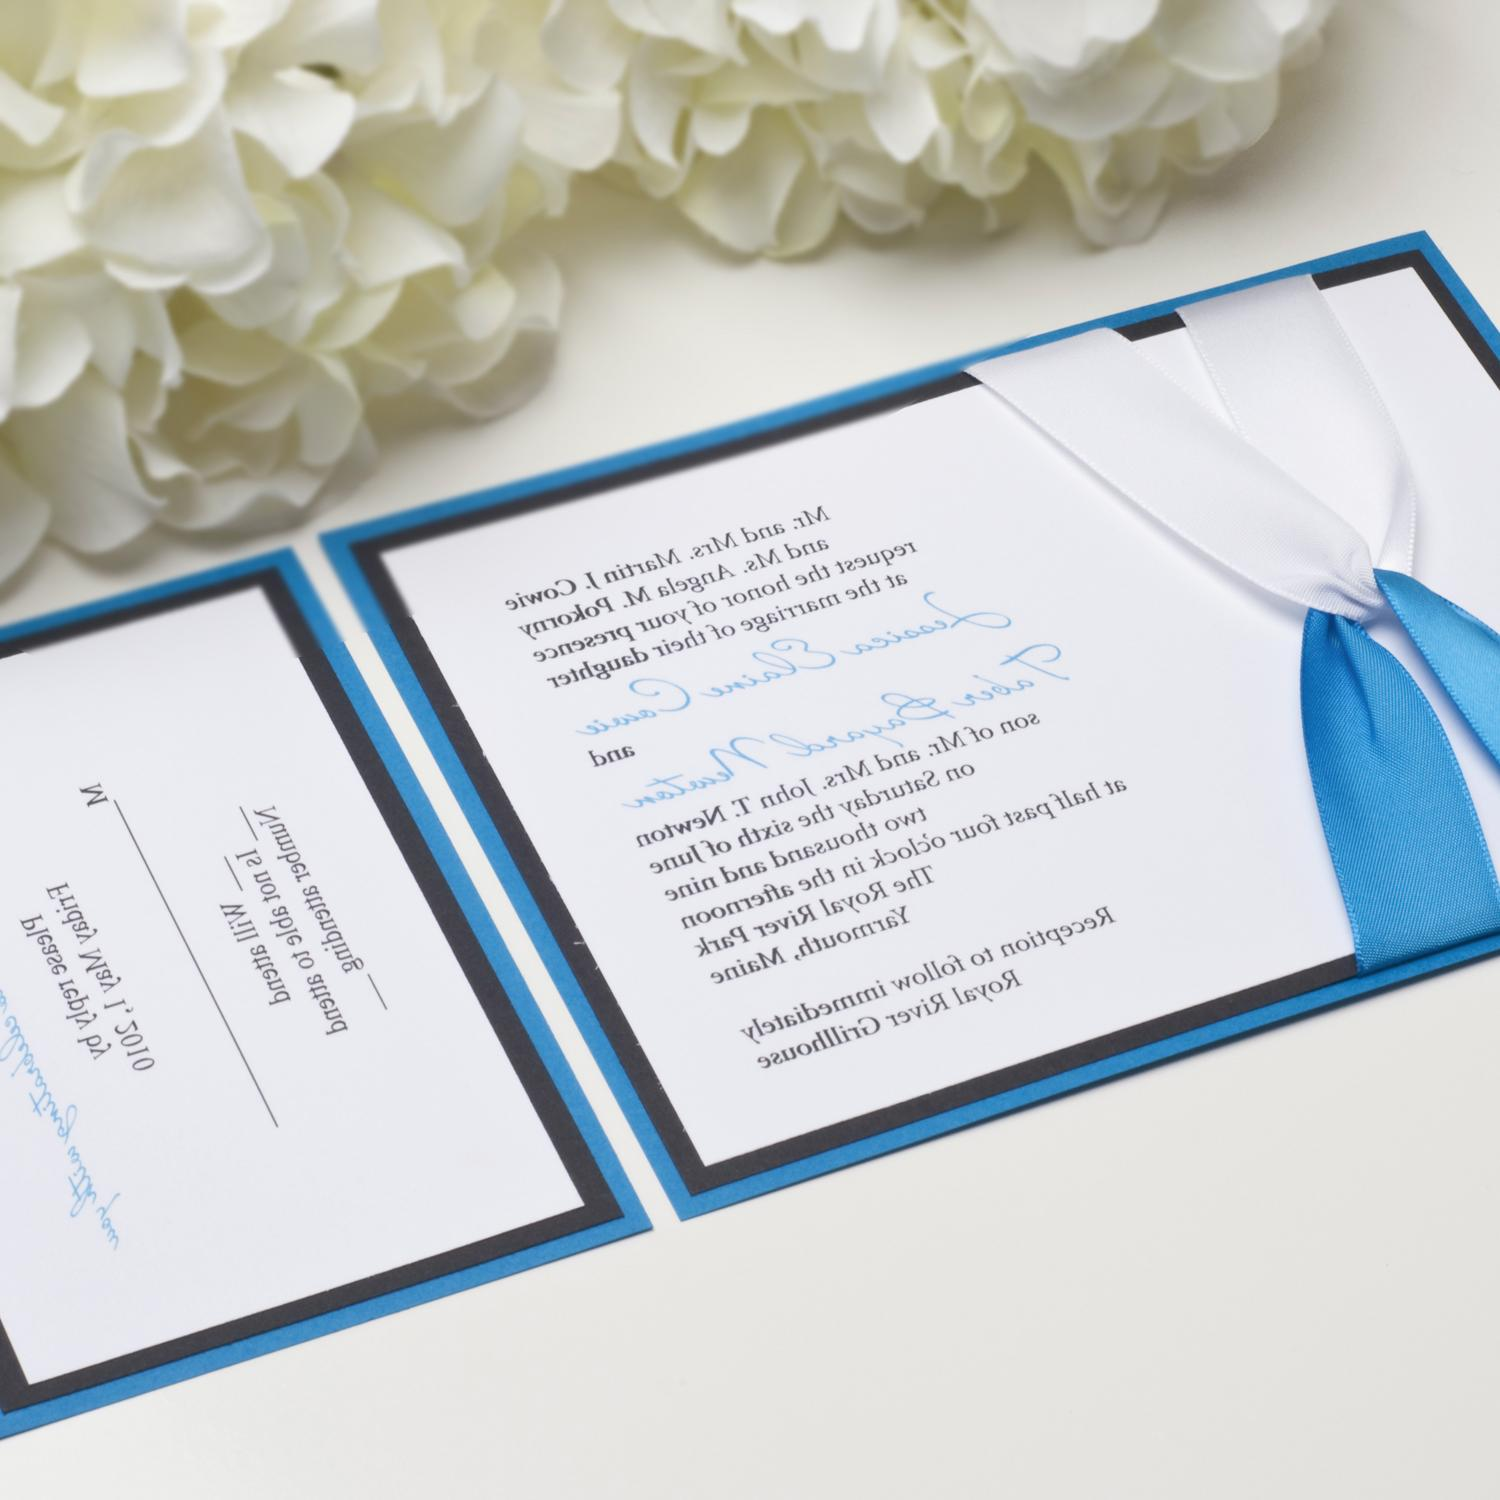 Romantic wedding invitations custom romantic wedding invitations stationery